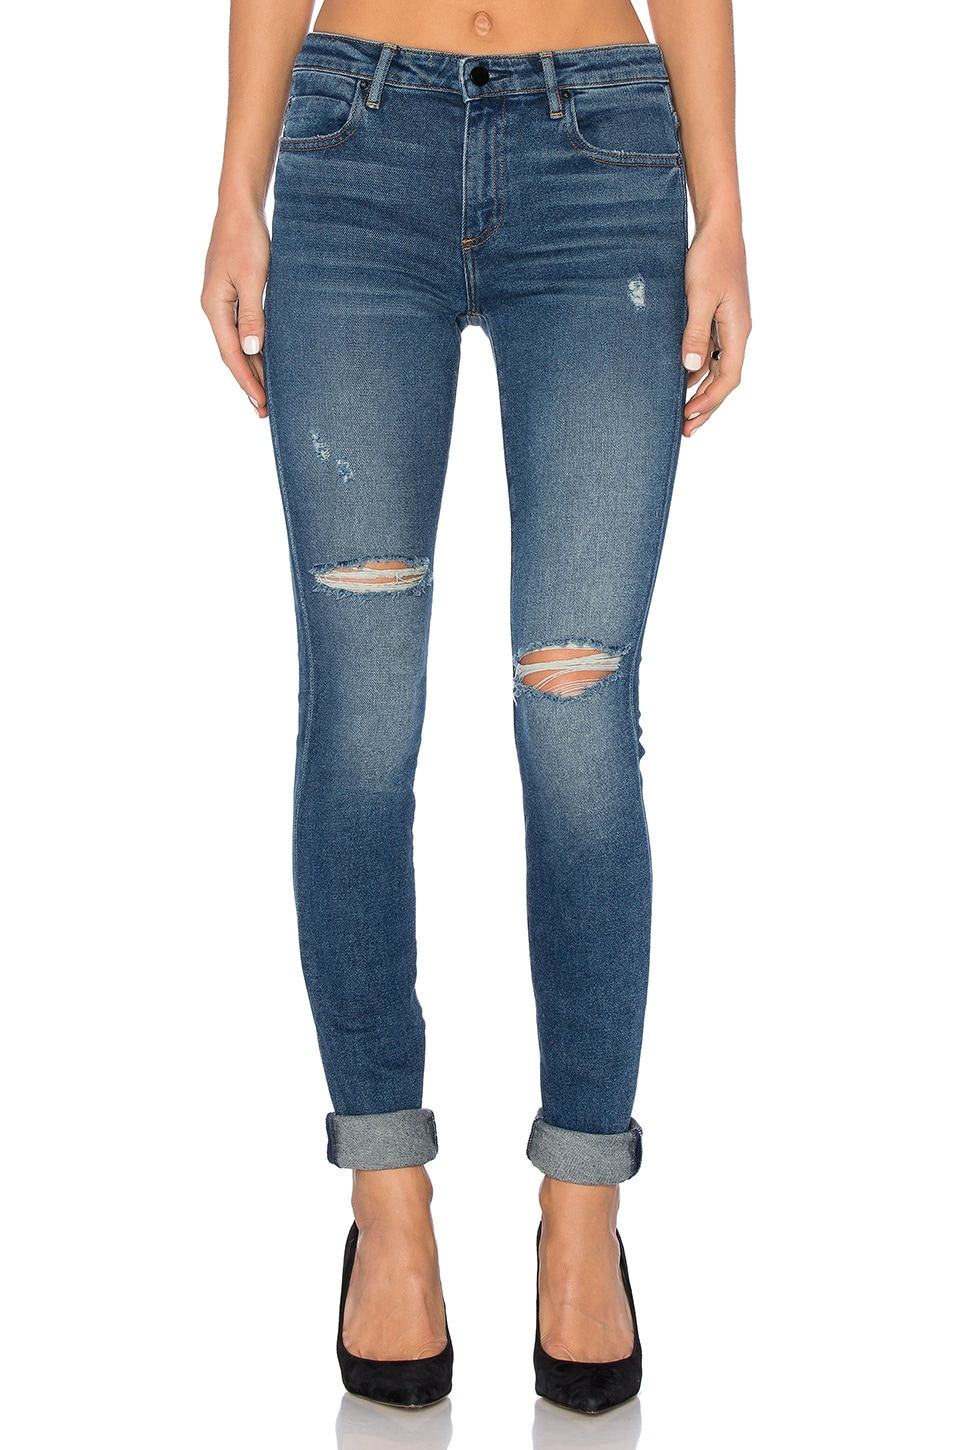 001 Relaxed Jean by DENIM x ALEXANDER WANG